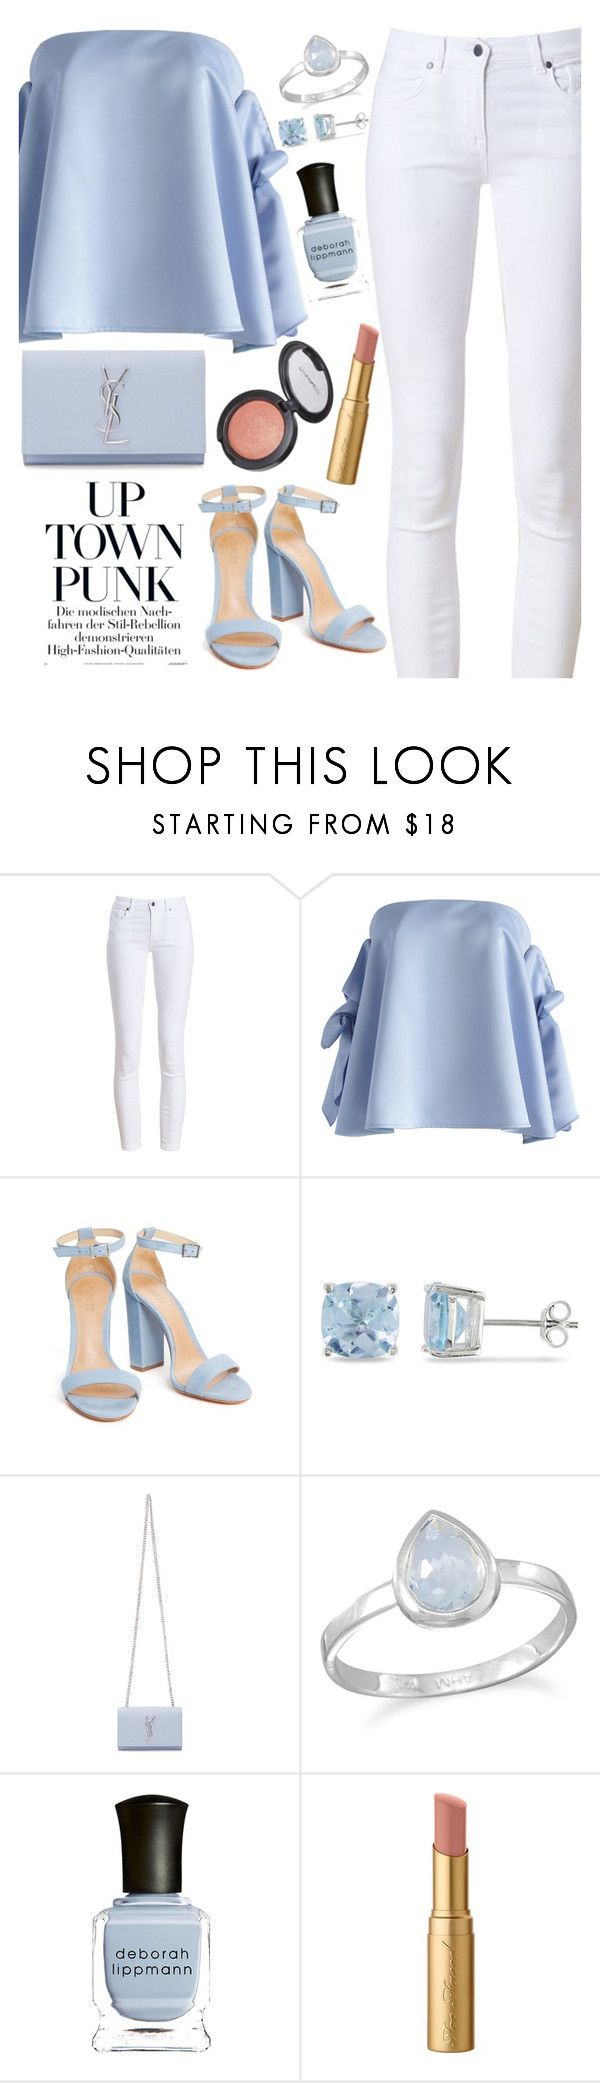 """""""Untitled #1782"""" by mihai-theodora ❤ liked on Polyvore featuring Barbour, Chicwish, Ice, Yves Saint Laurent, BillyTheTree, Deborah Lippmann and Too Faced Cosmetics"""